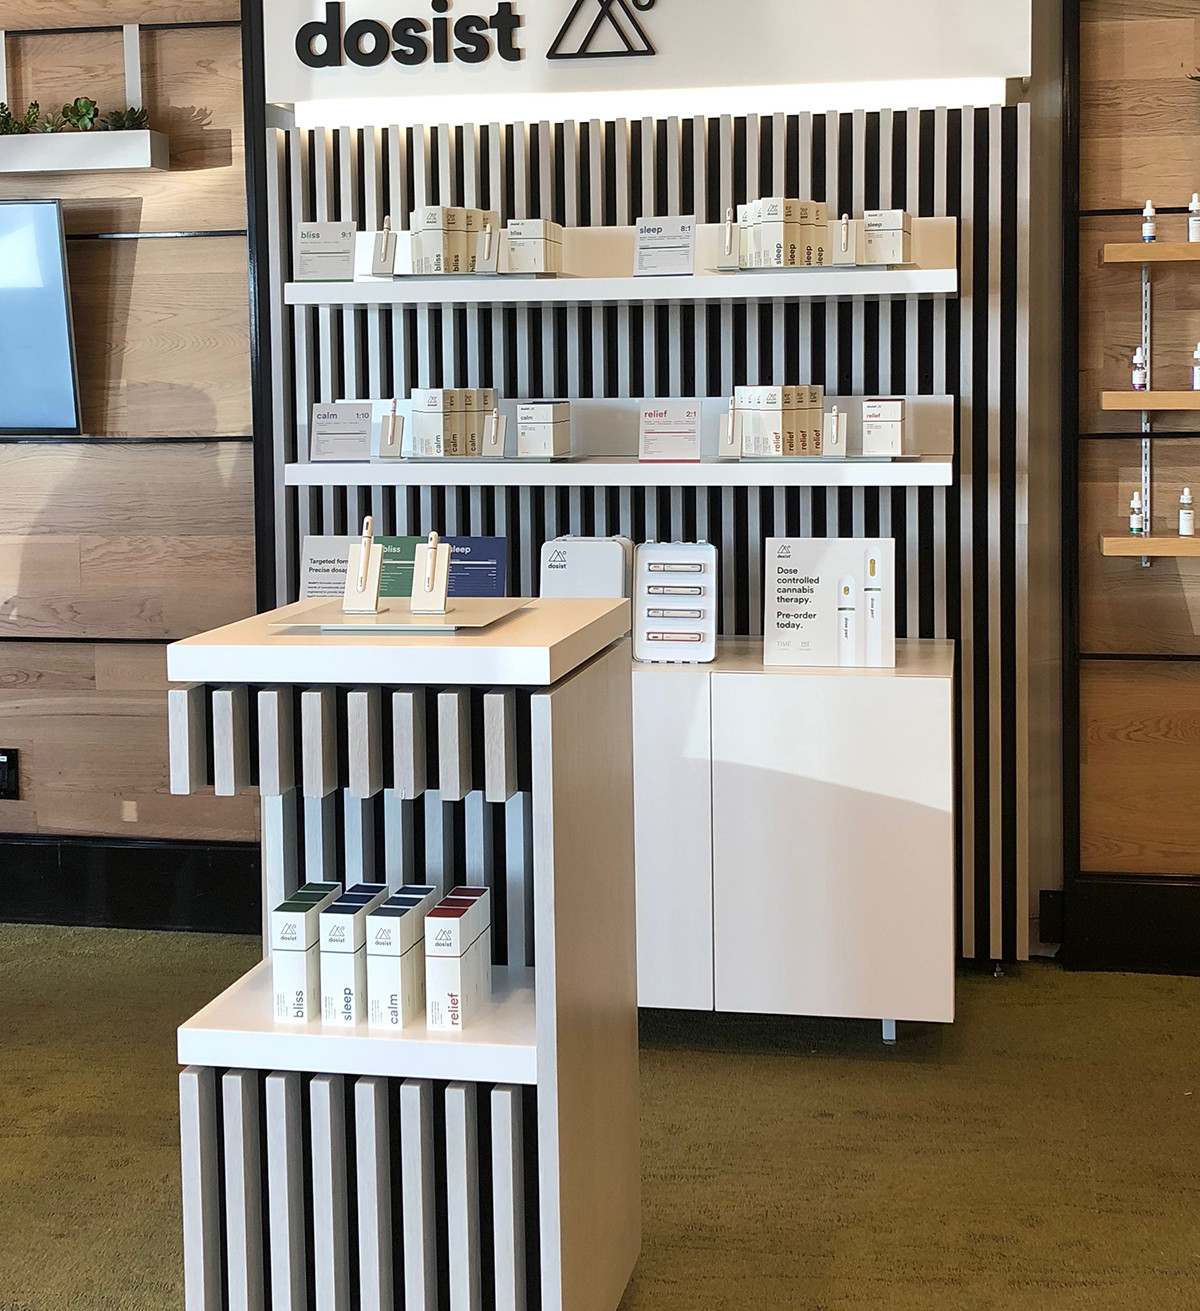 This reveal element is apparent in the space between the slats on the modular wall units